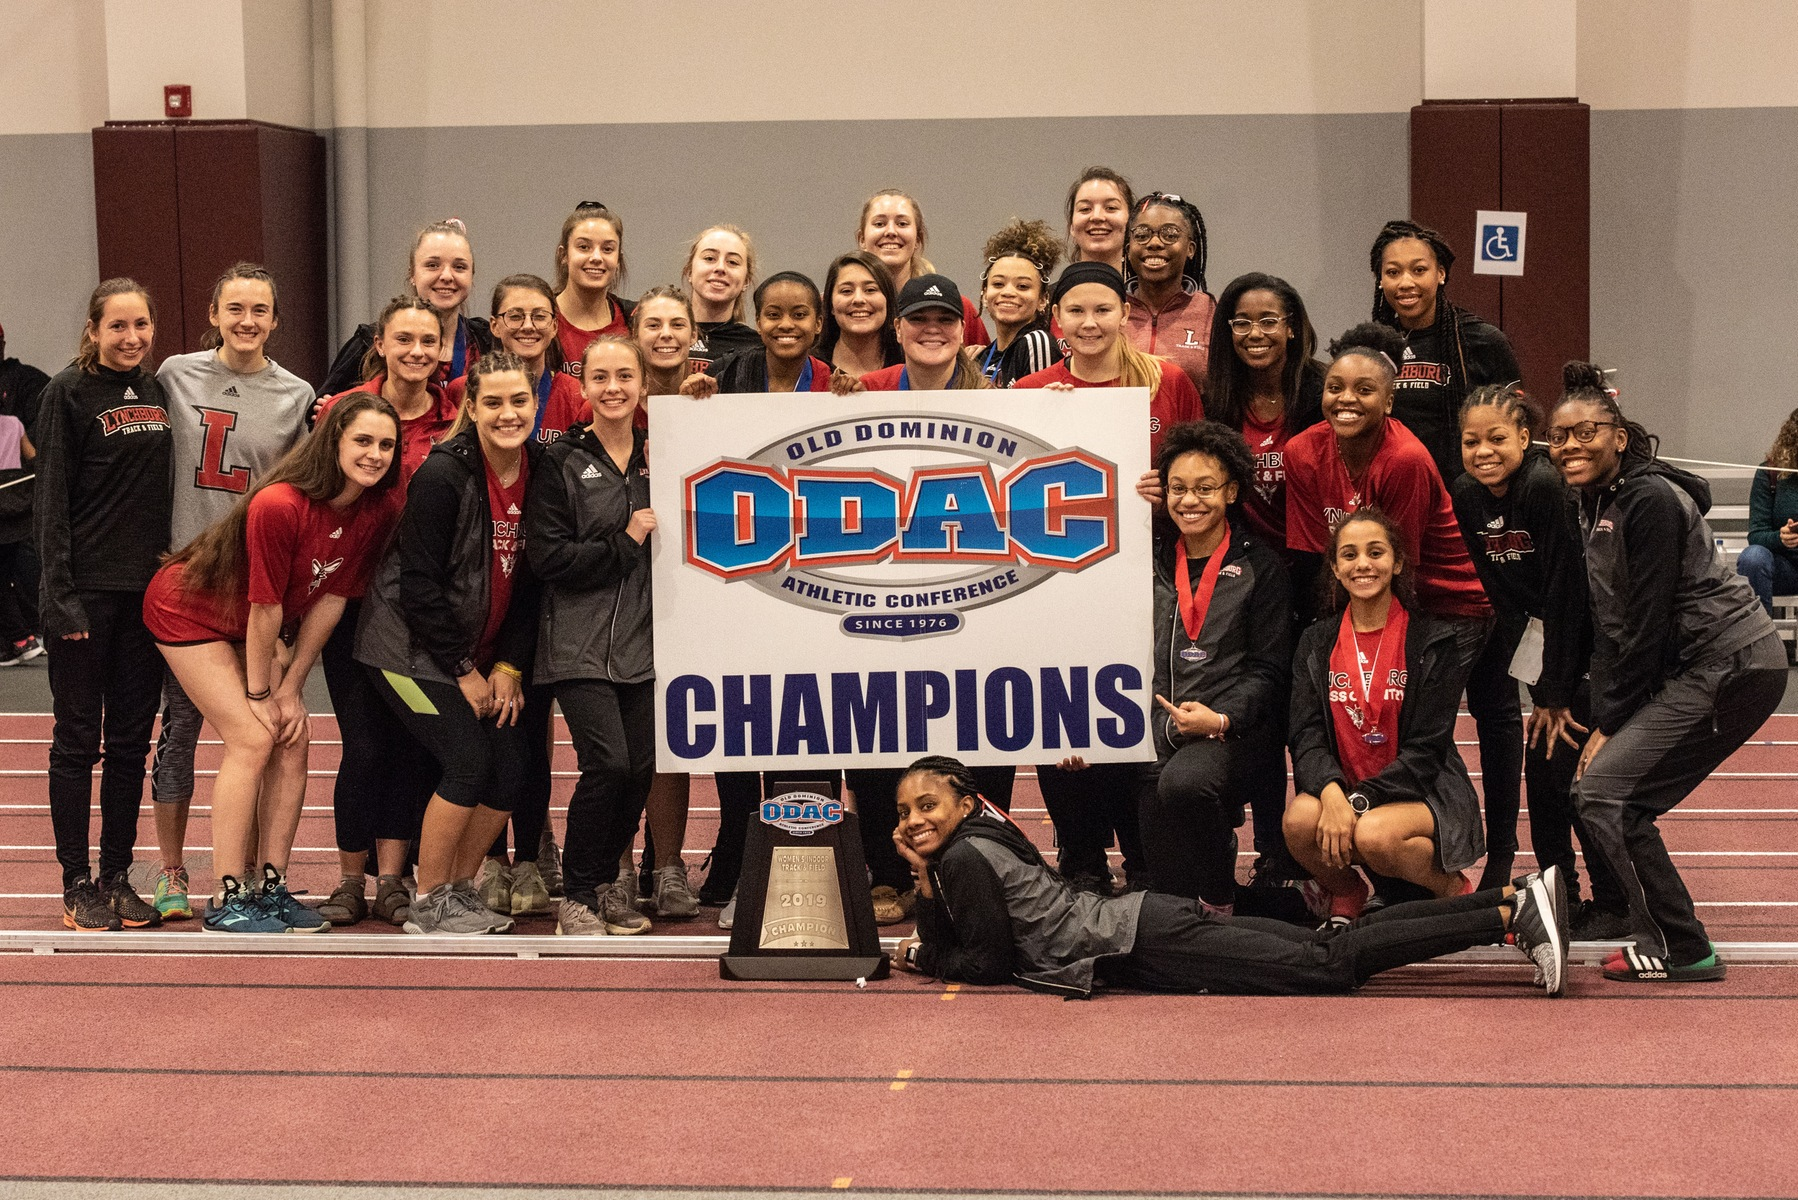 Lynchburg women's track poses with ODAC champions sign and trophy